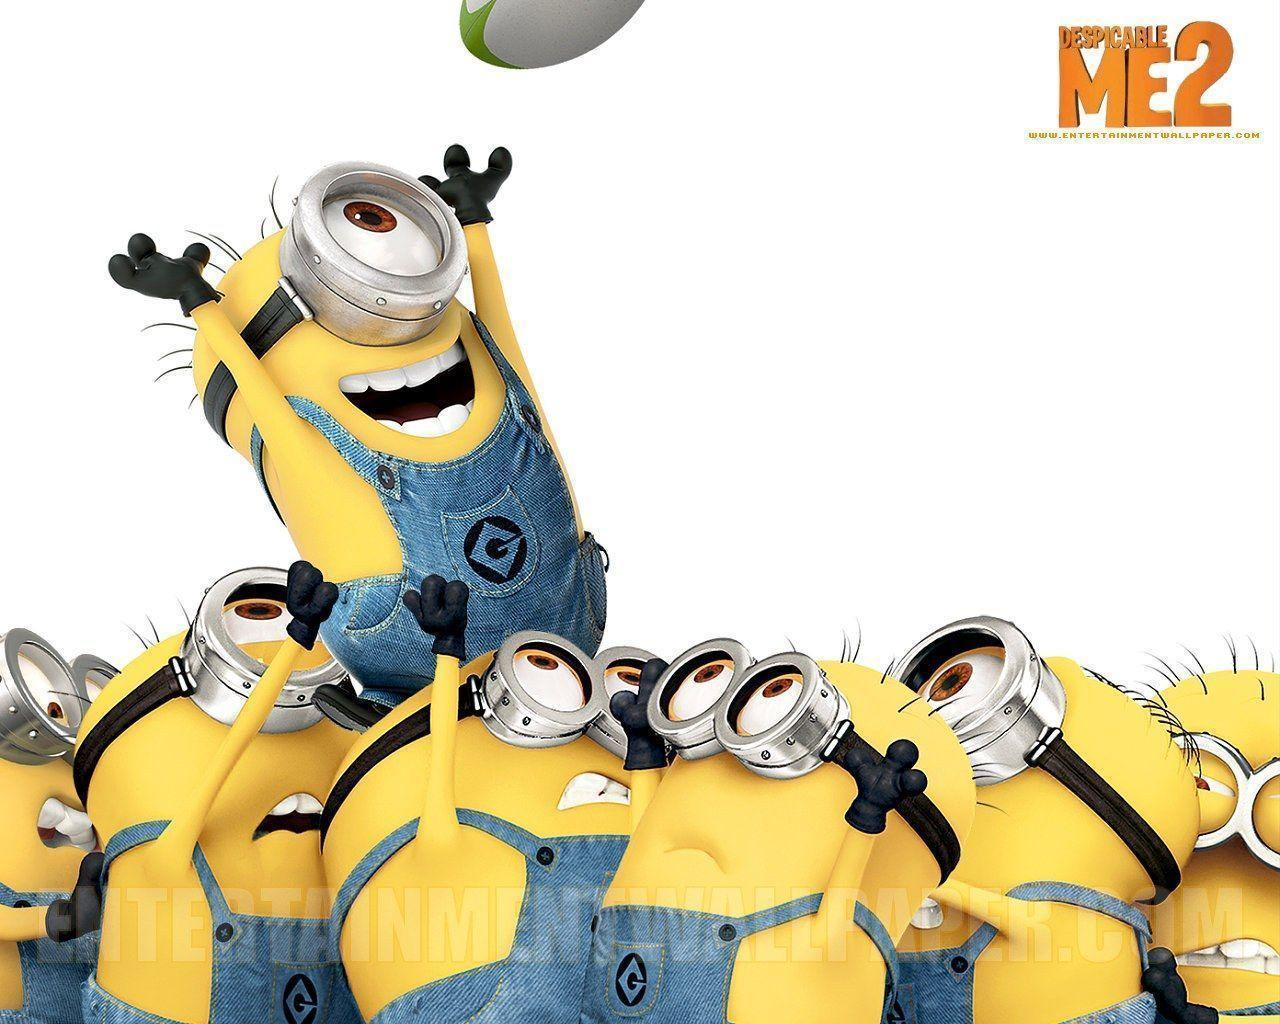 Minions despicable me wallpapers wallpaper cave - Despicable me minion screensaver ...